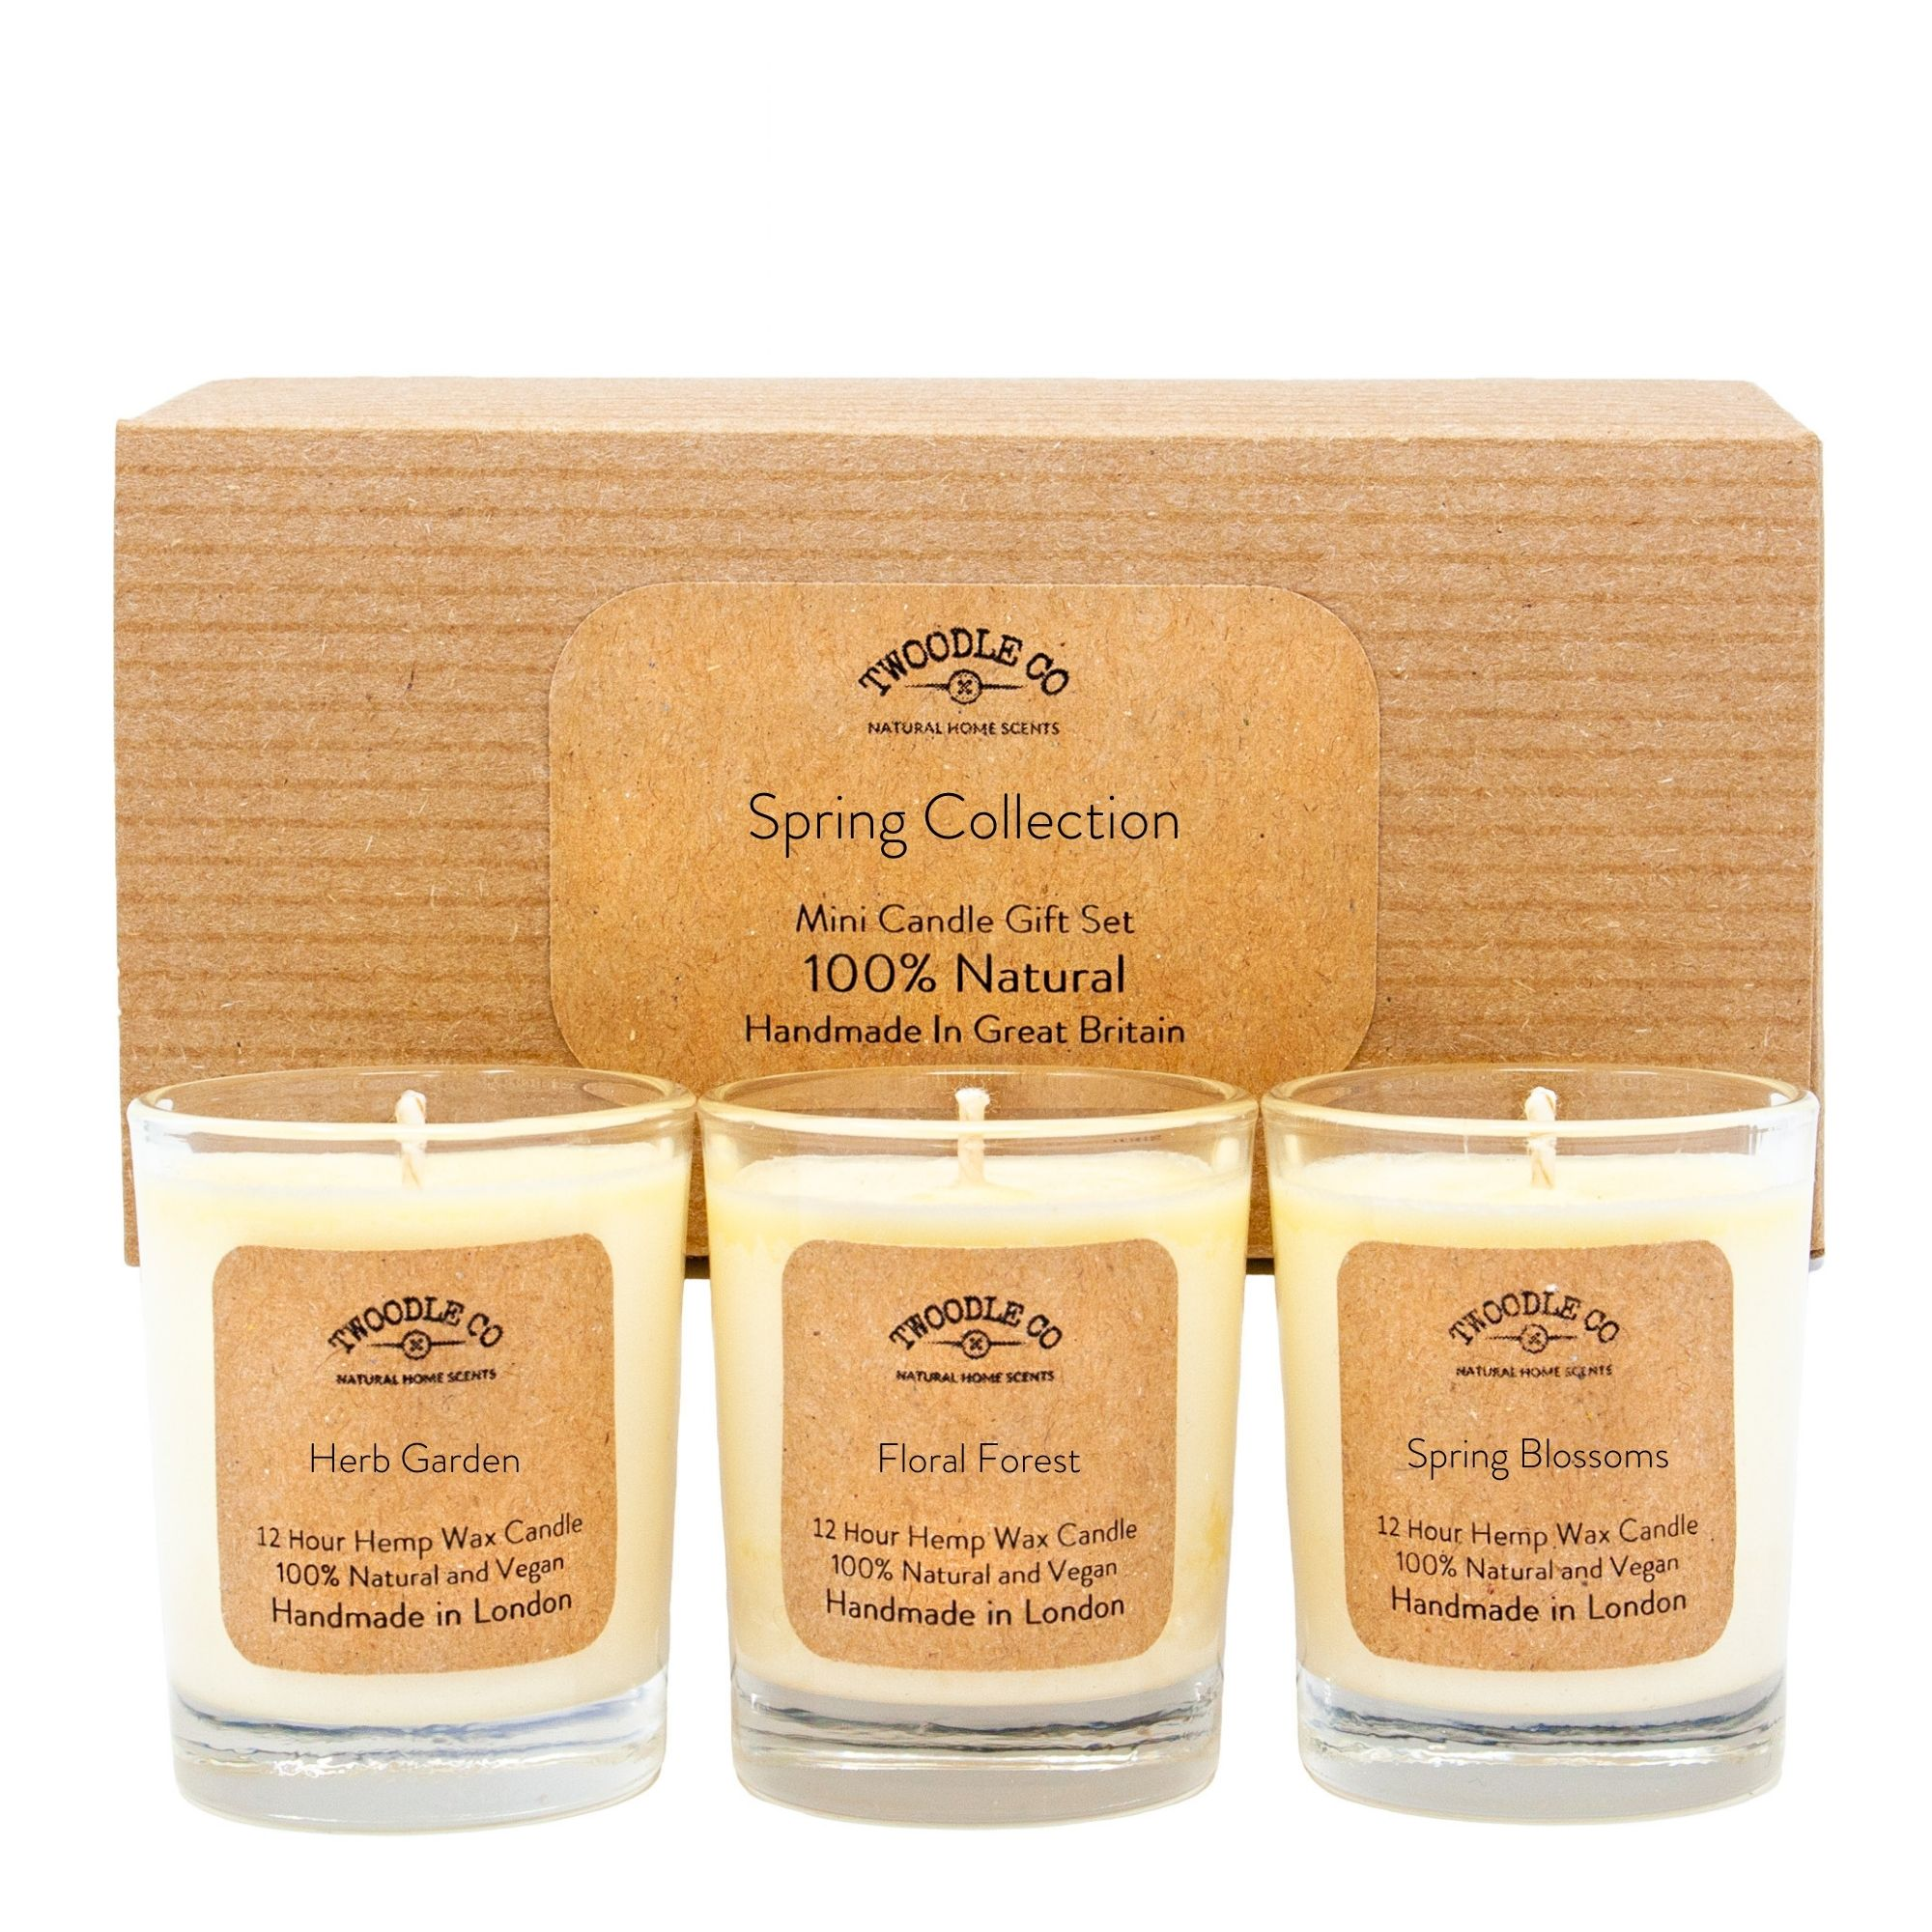 Spring Collection Mini triple candle Gift Set by Twoodle co Natural home scents